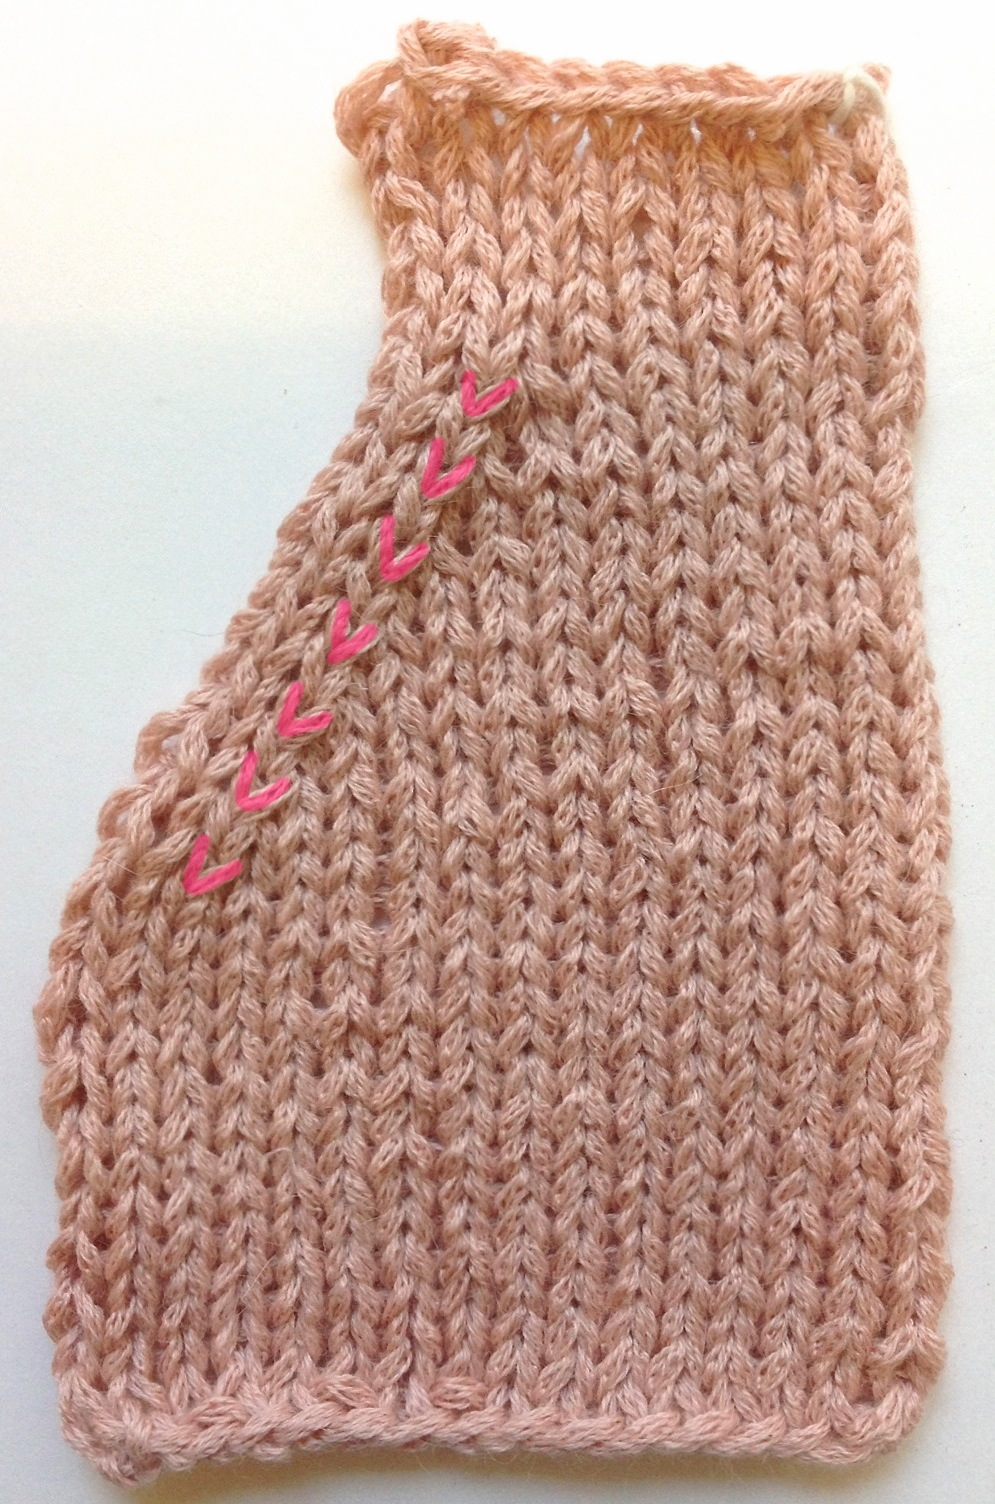 Knitting Yrn K2tog : Emily explains what does ssk really mean berroco